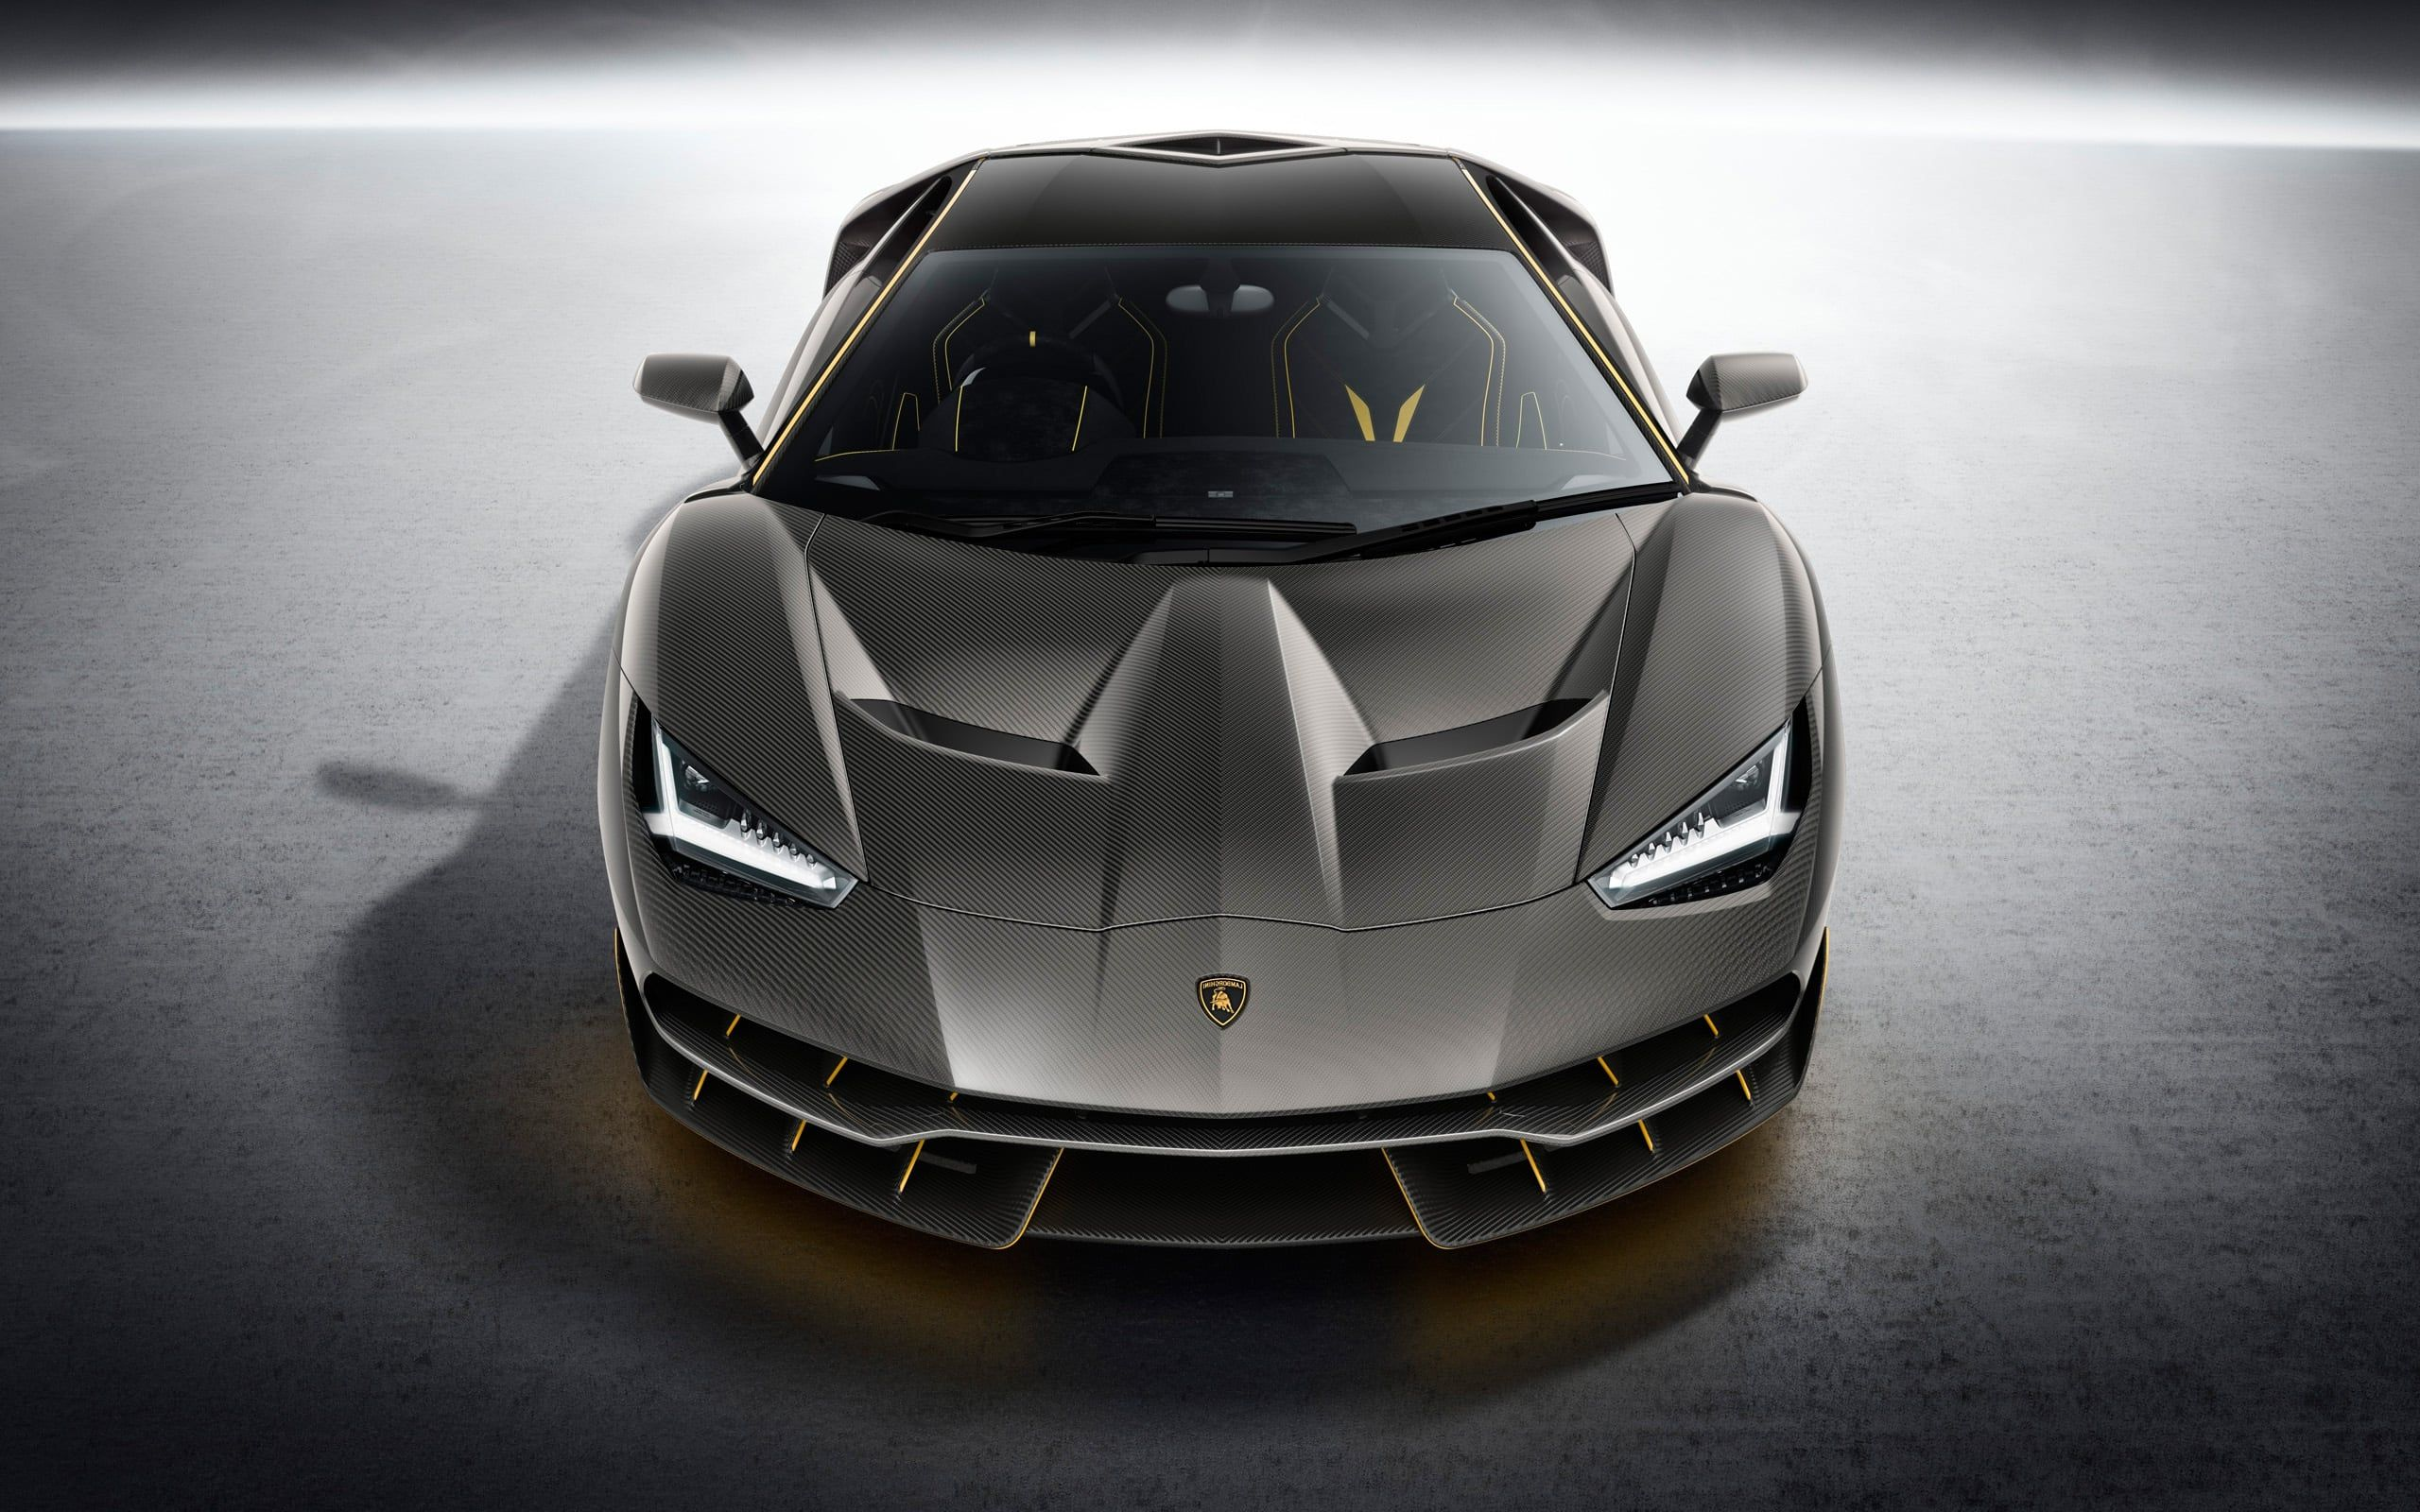 automobili wallpapers pin official lamborghini hd pinterest website